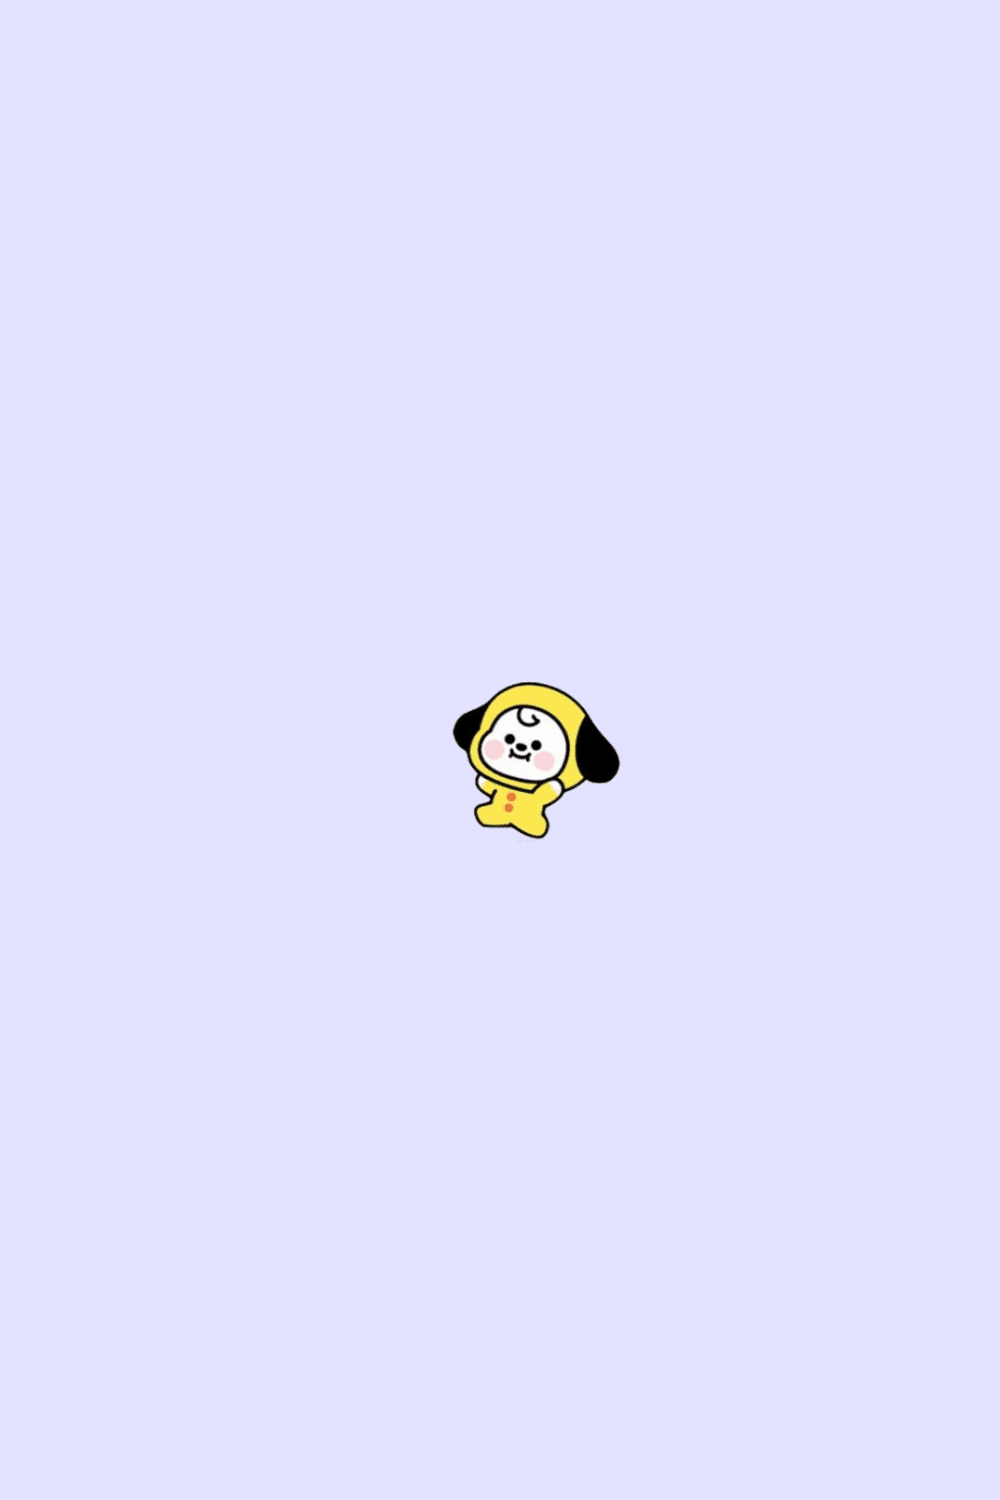 #chimmy #jimin #bt21